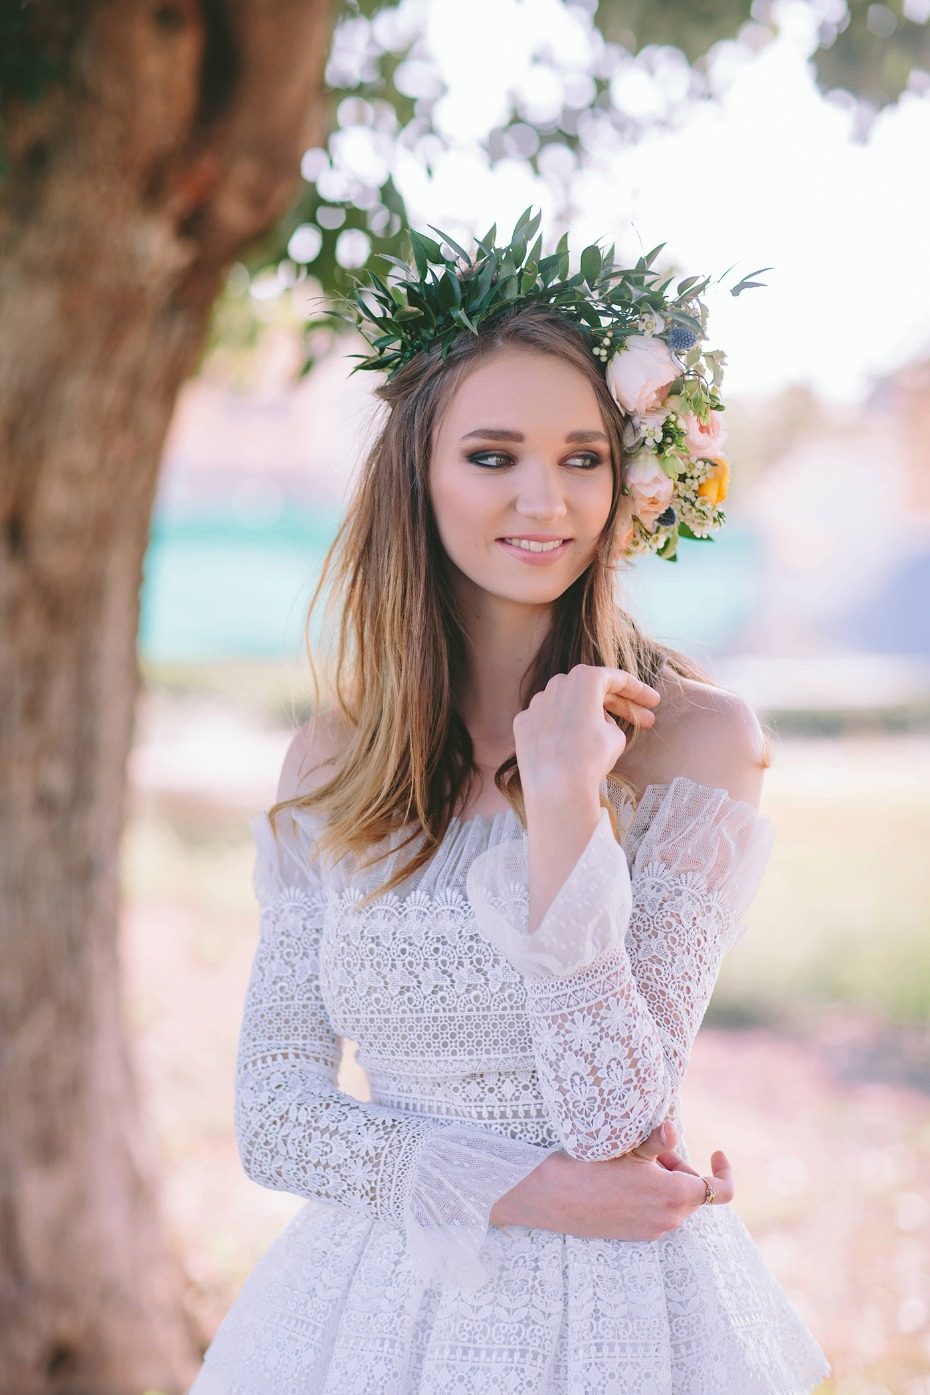 Boho flower crown #goals